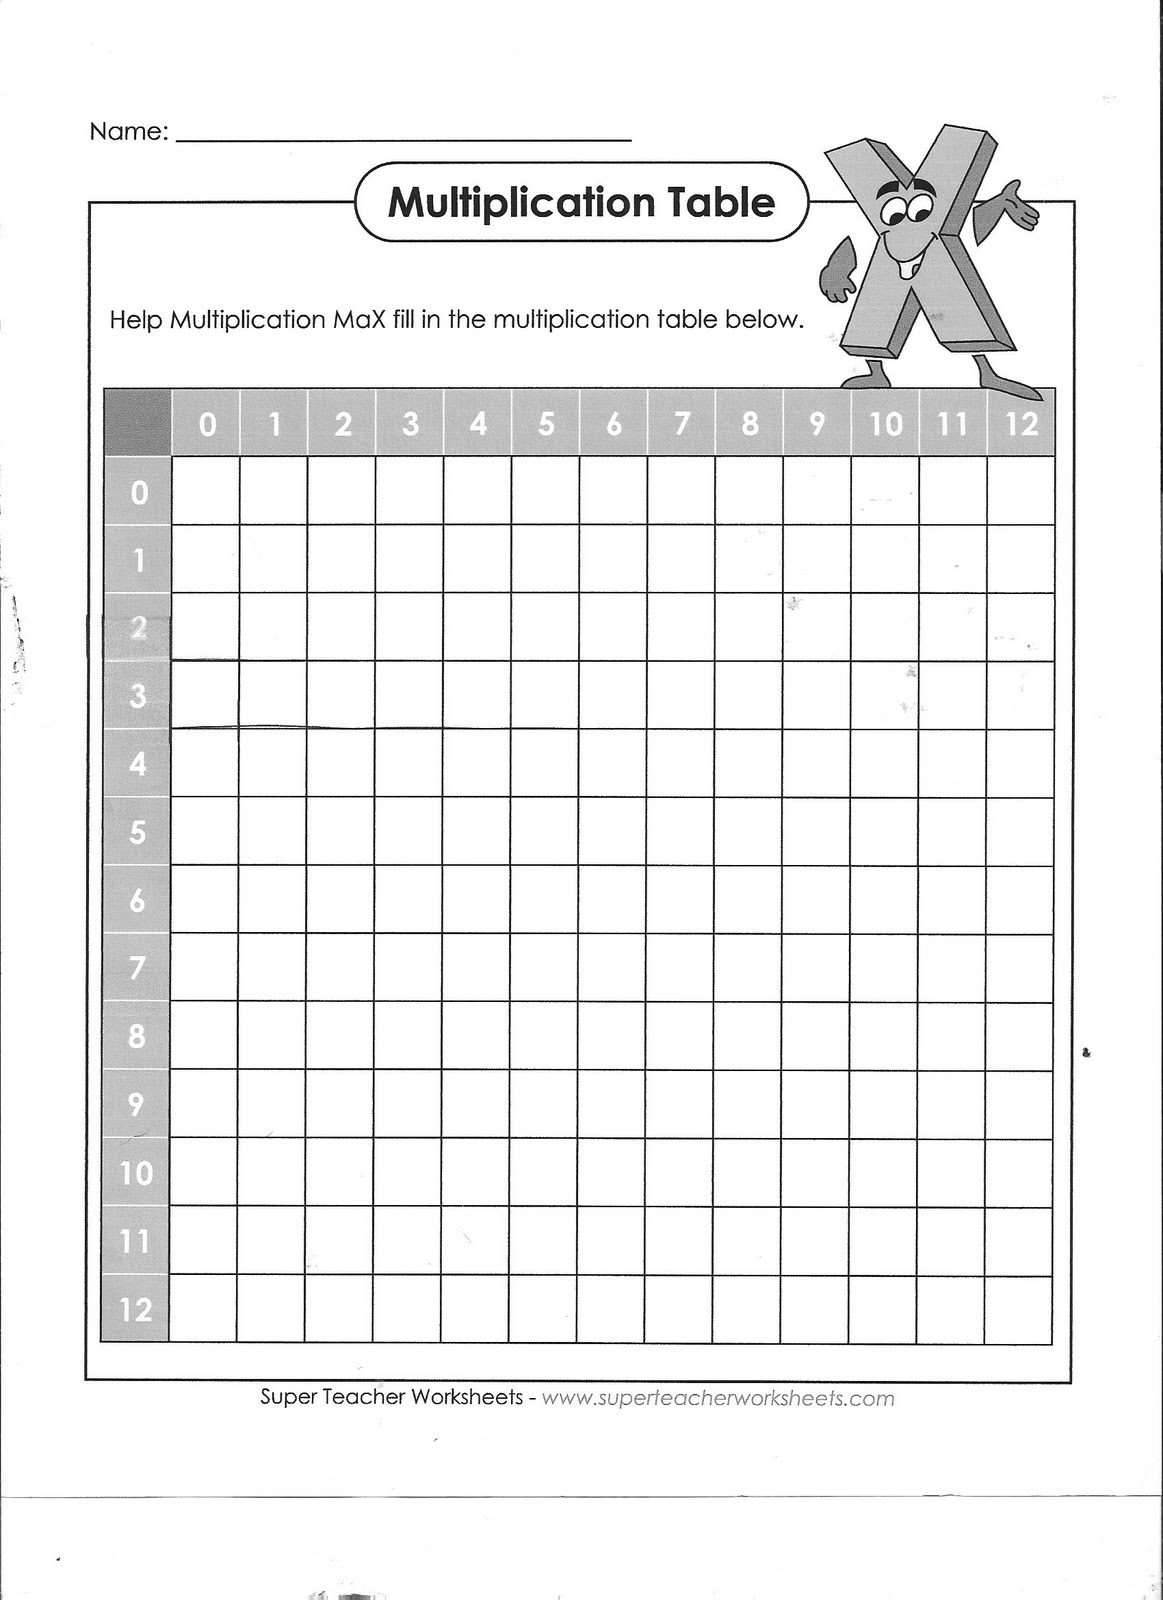 worksheet Multiplication Chart 0-12 similiar blank multiplication chart 0 12 keywords displaying 16 images for 12